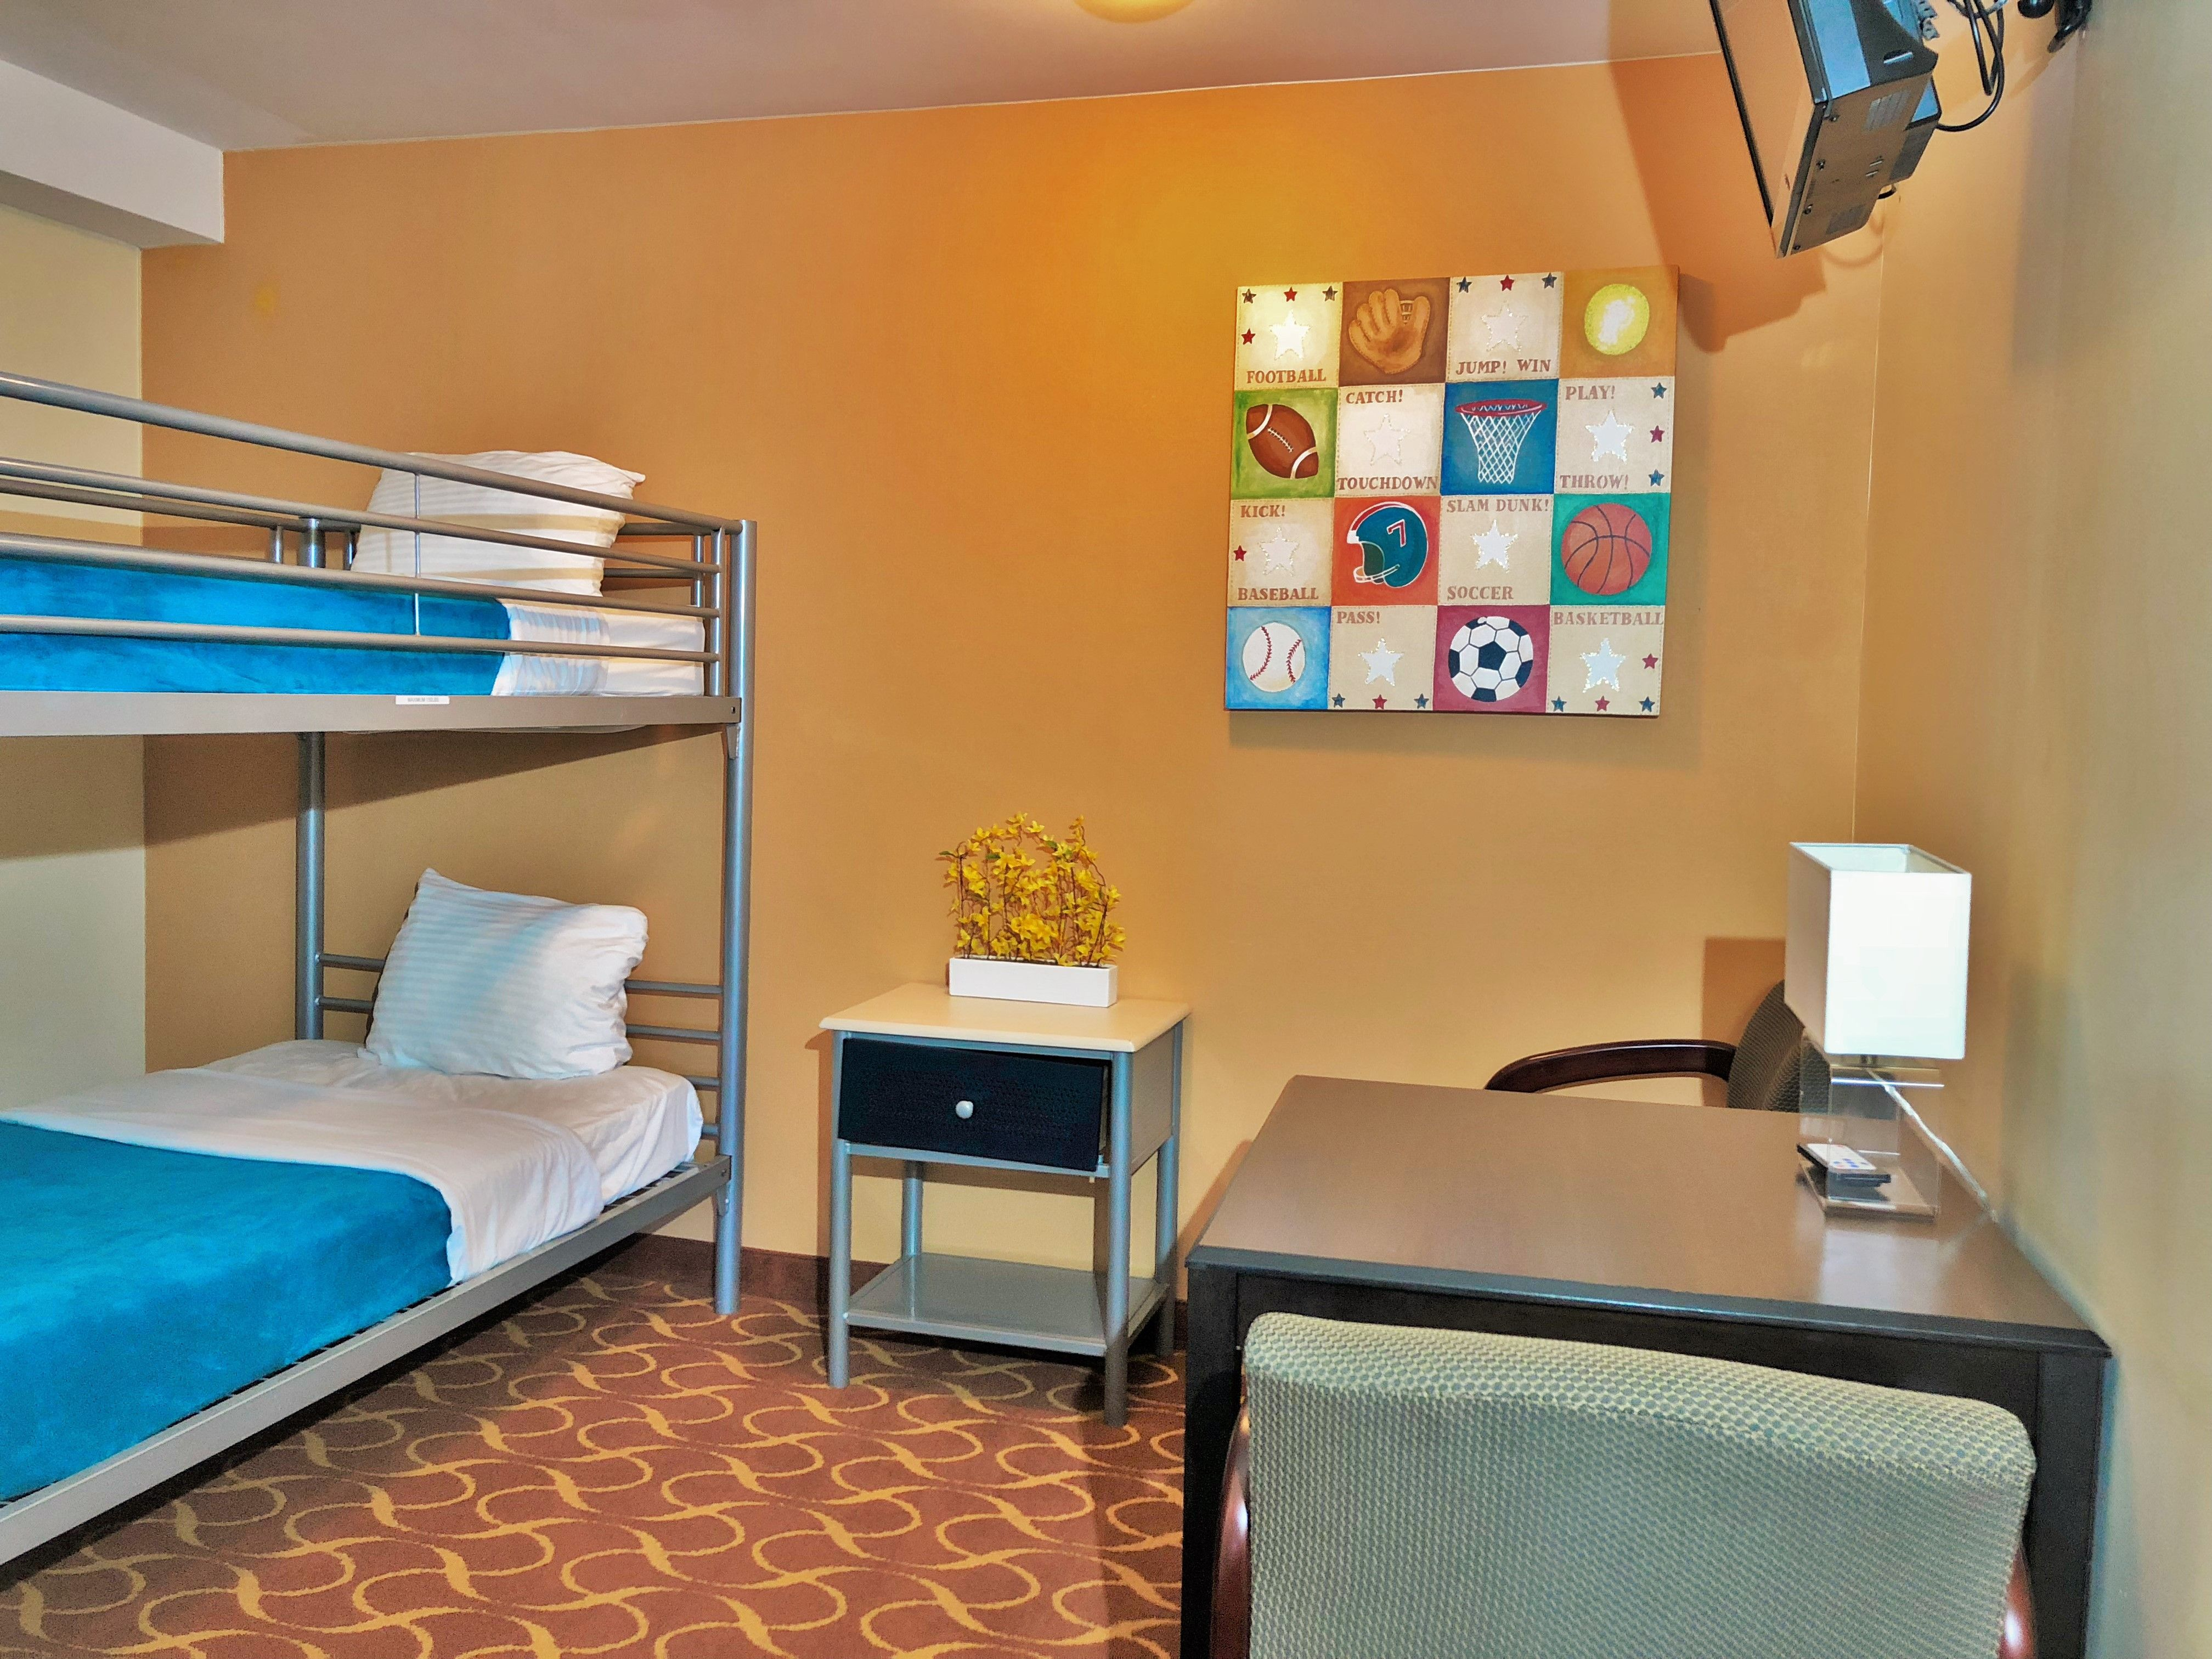 Hotels Near Six Flags Hurricane Harbor Hurry Up And Book Your Stay With Our Arlingtonhotelnearat Tstadium And Have A De In 2020 Lux Hotels Arlington Hotel Hotel Spa